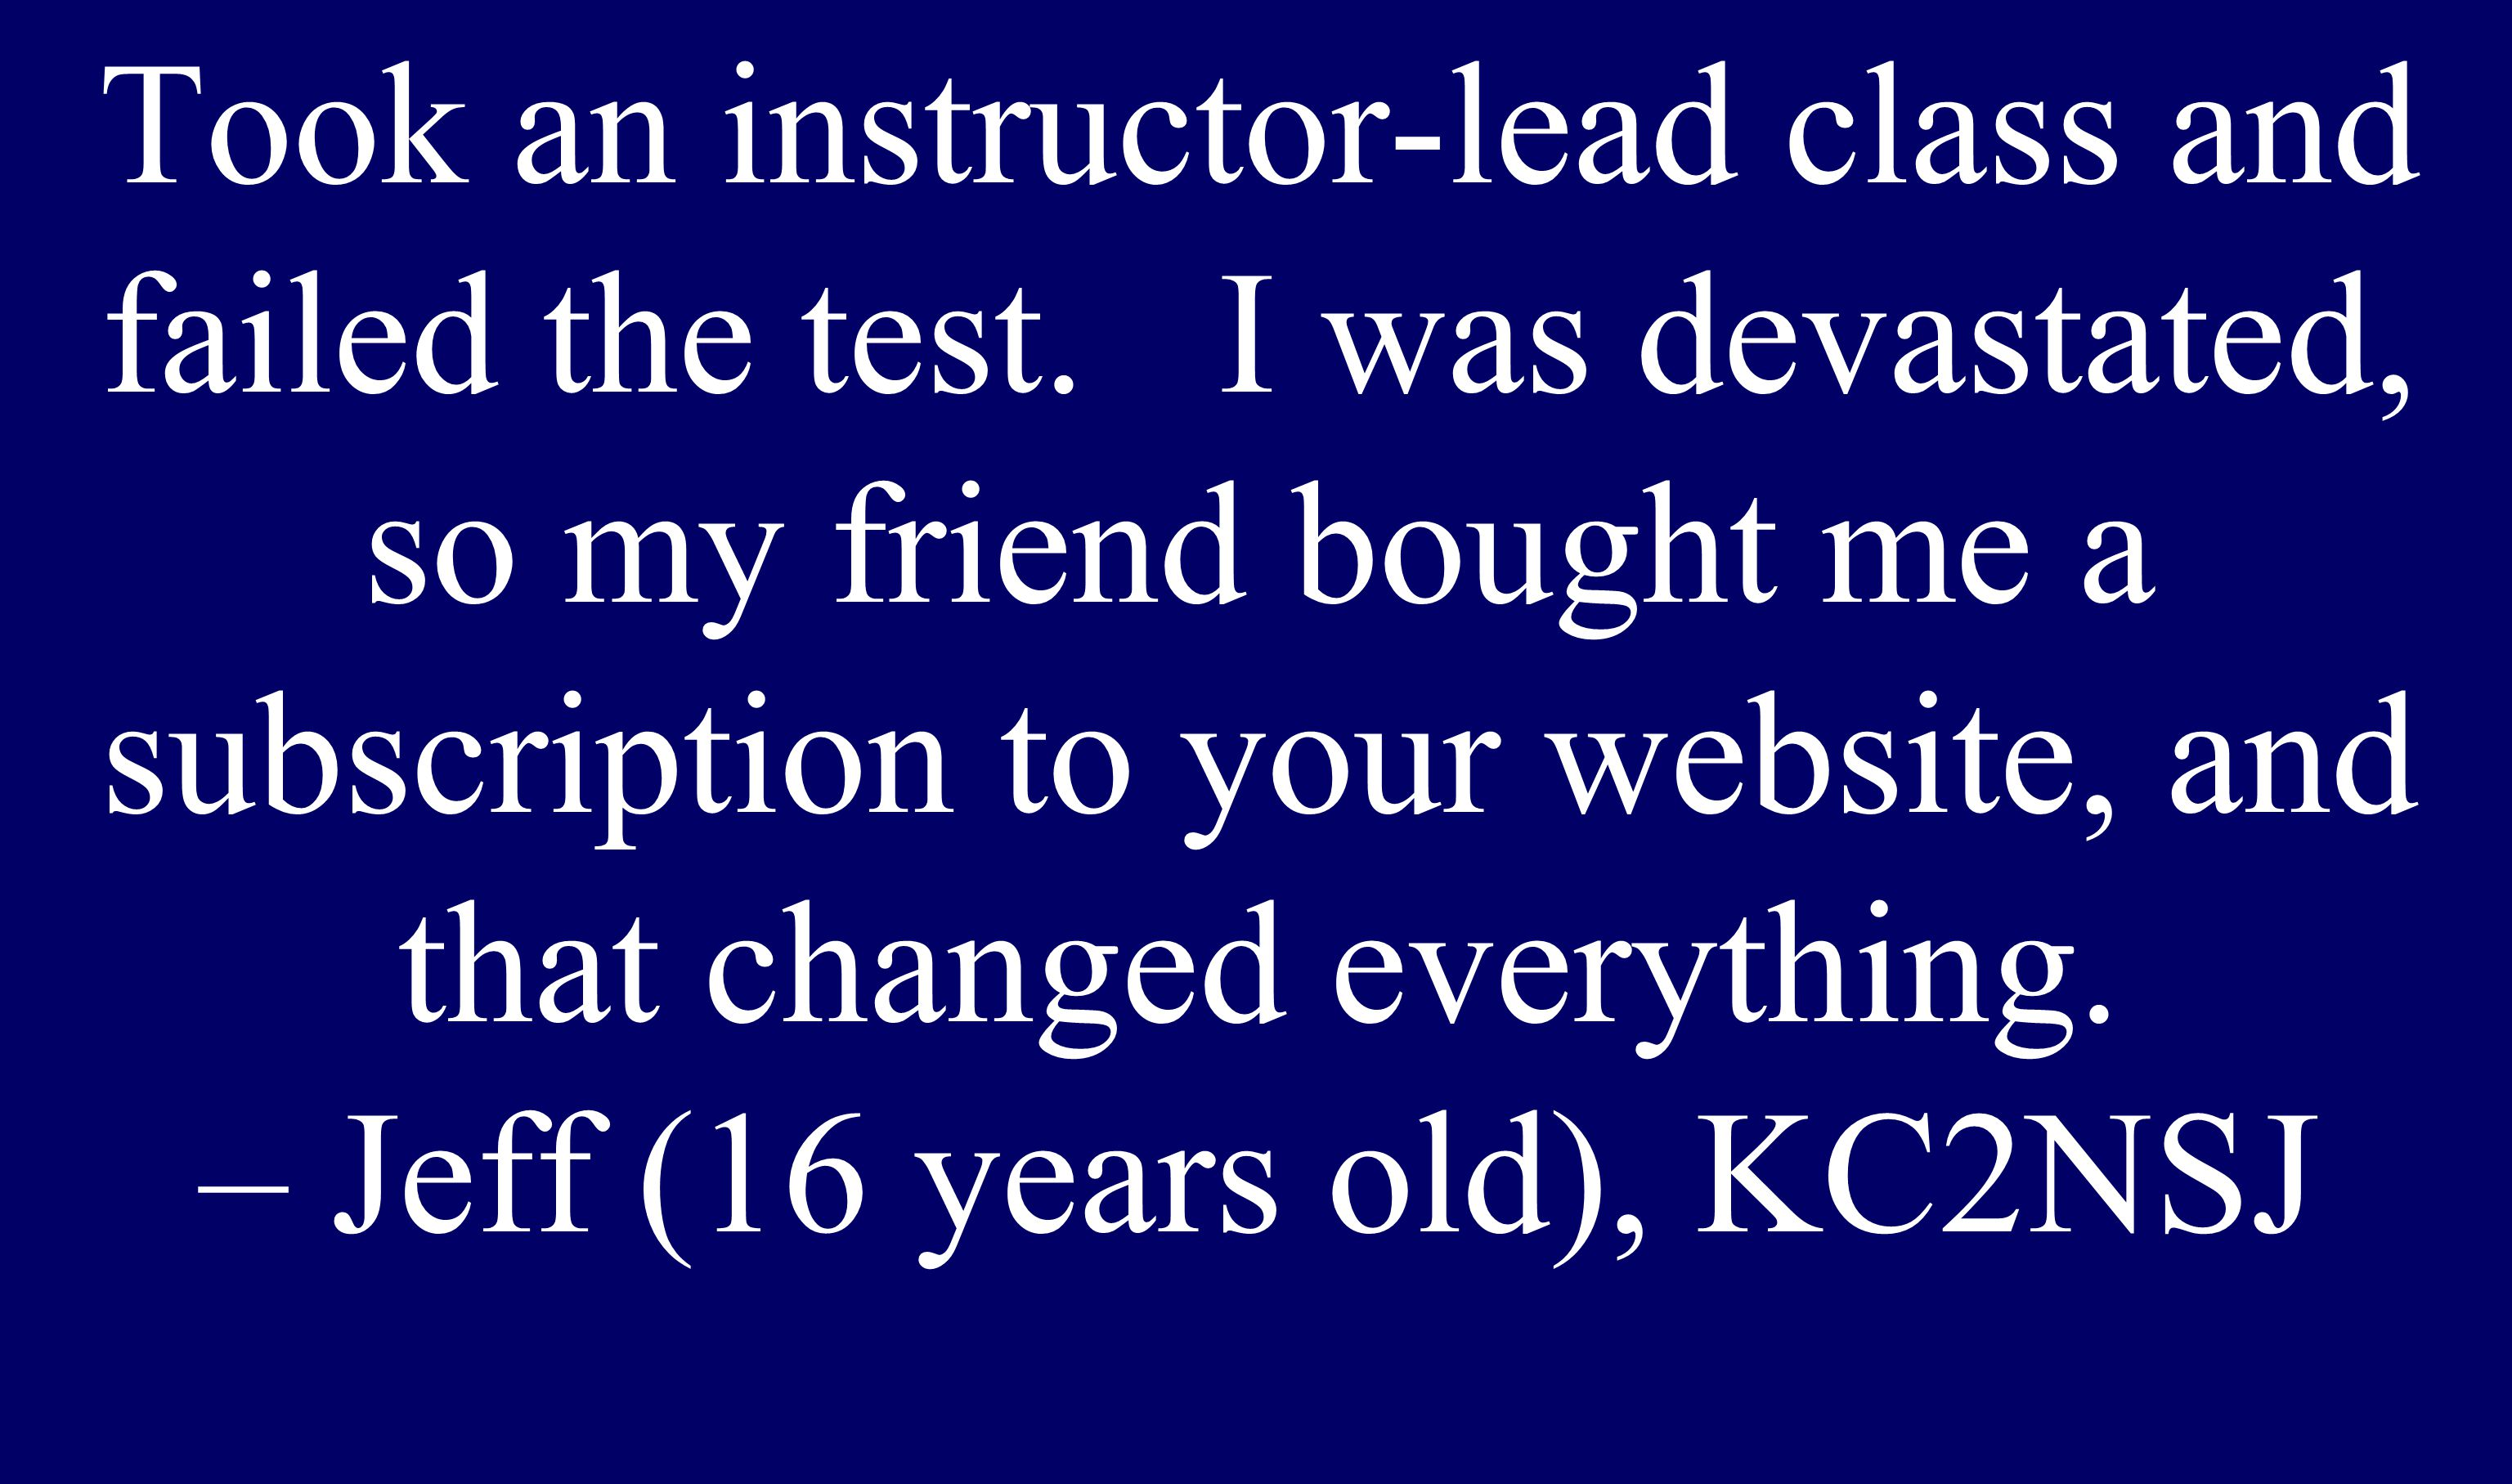 Took an instructor-lead class and failed the test. I was devastated, so my friend bought me a subscription to your website, and that changed everythin